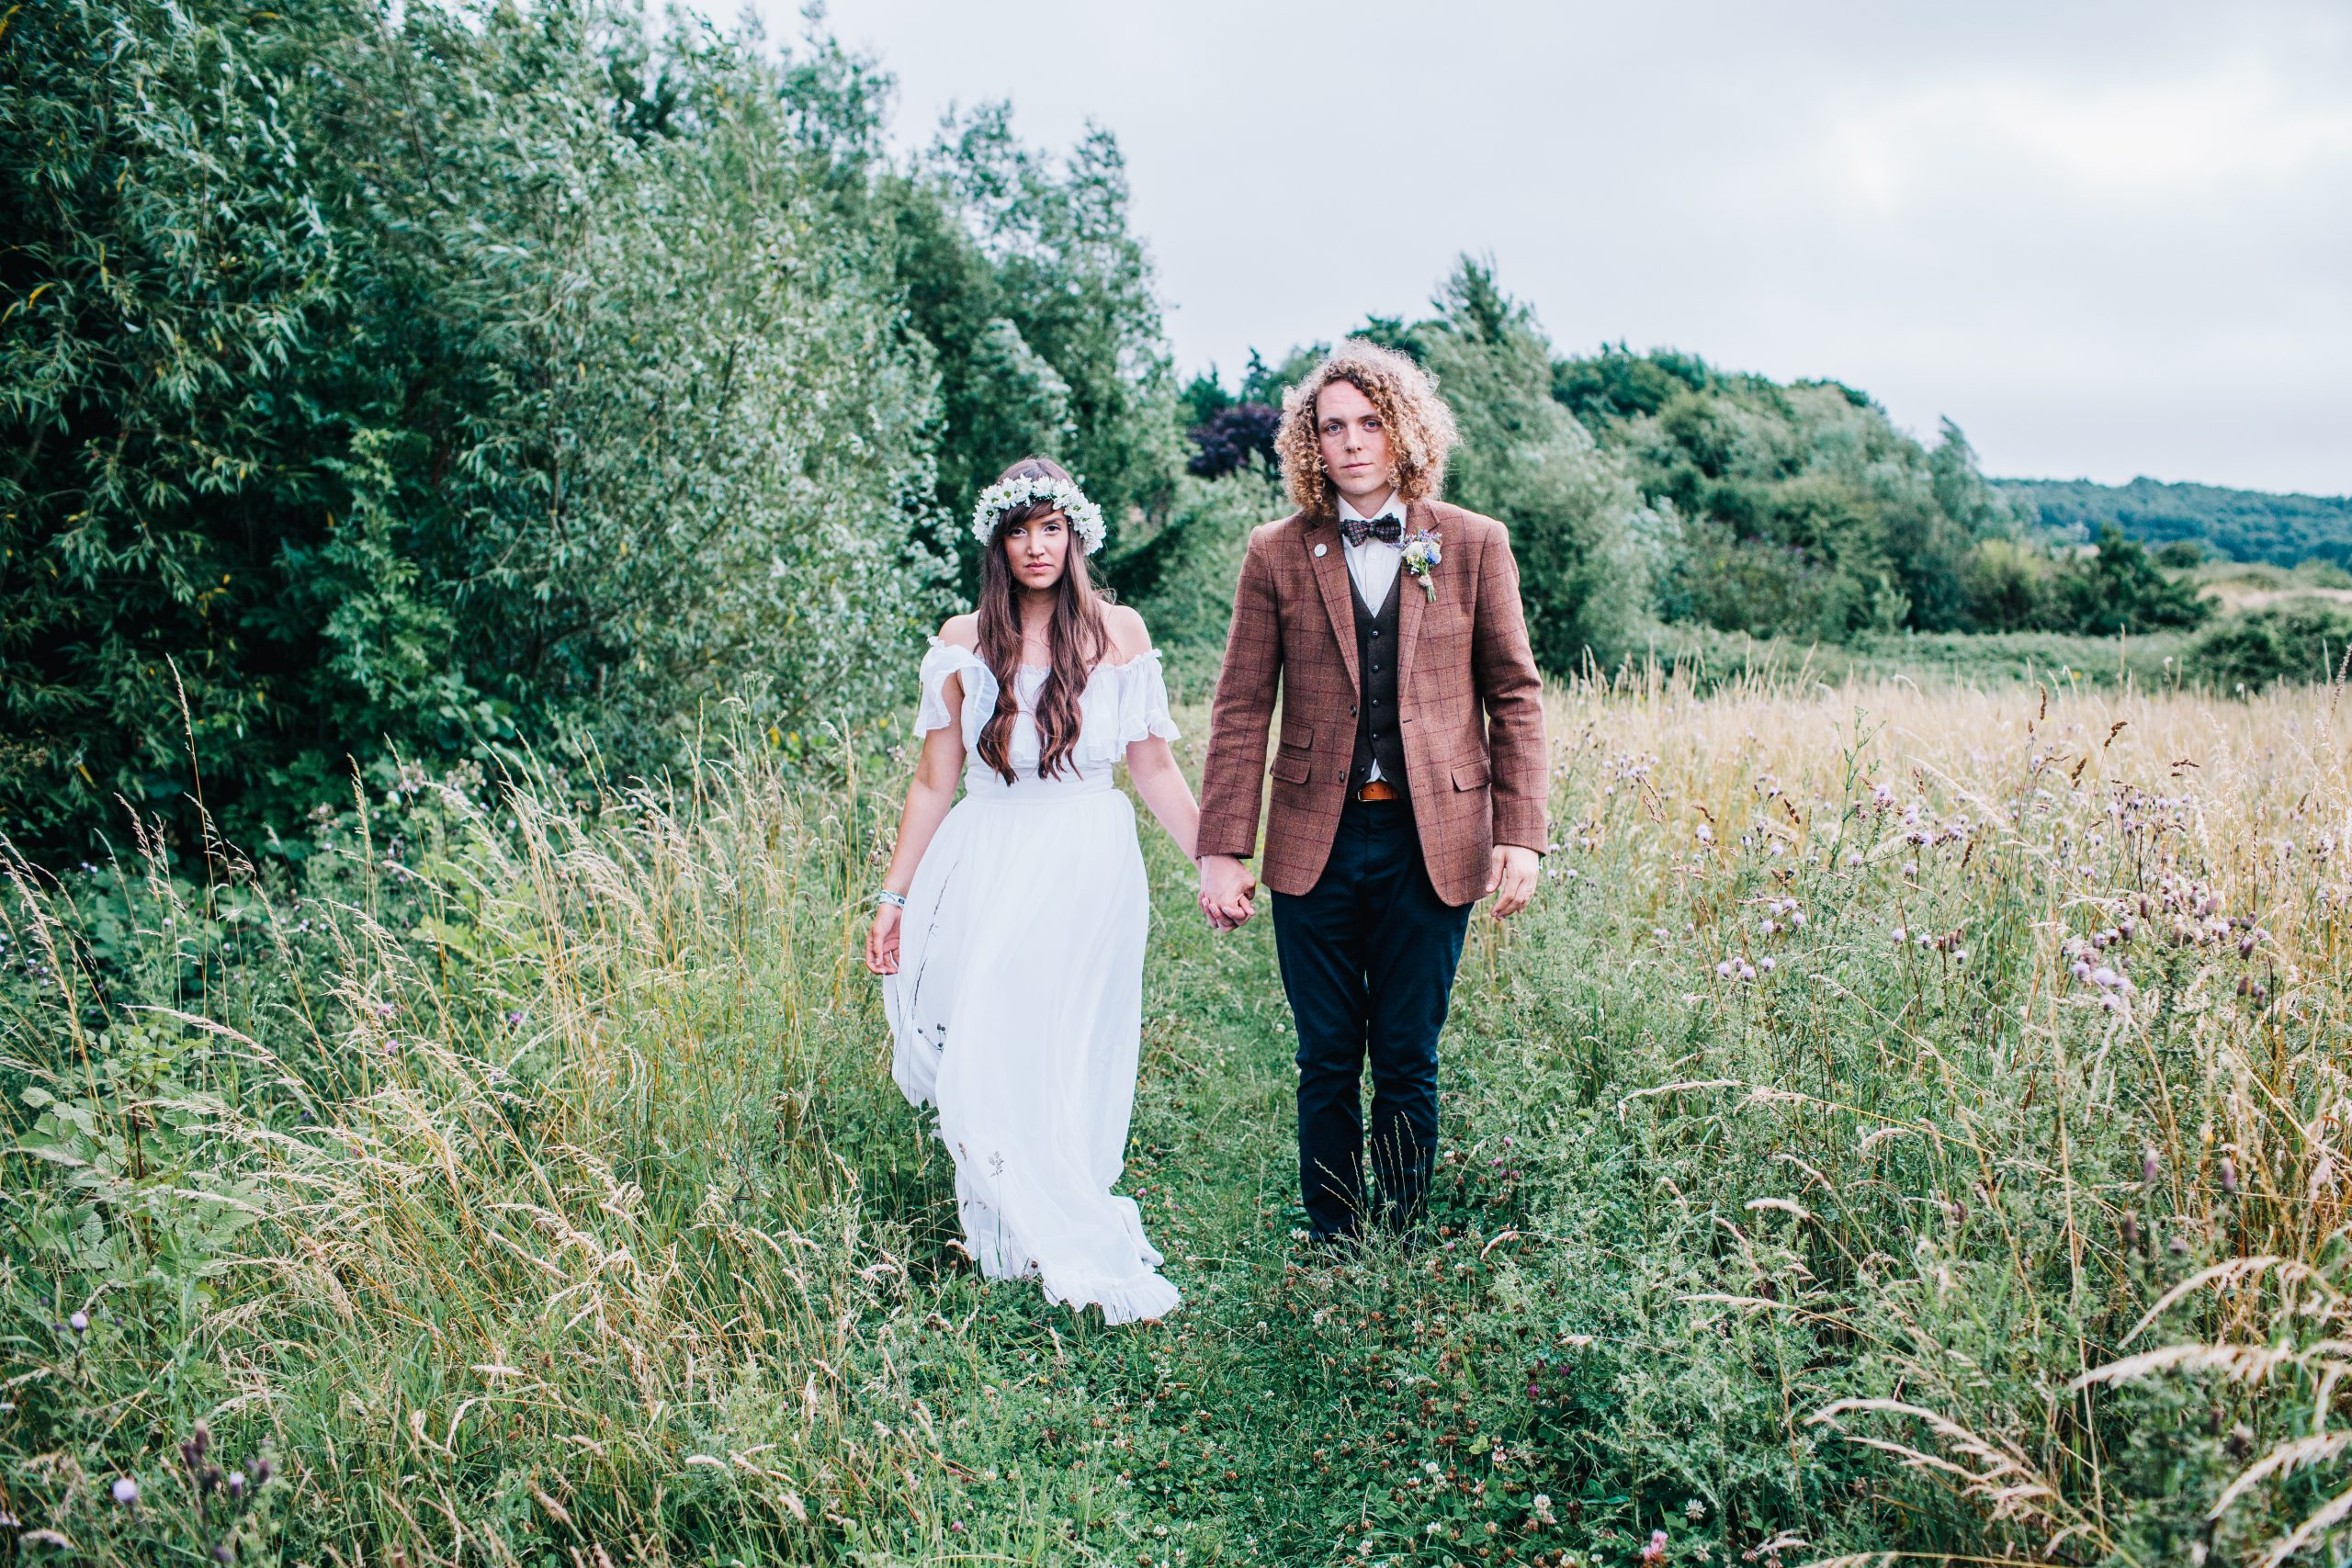 outdoor festival wedding with bride wearing charity shop wedding dress walking holding hands with groom in tweed